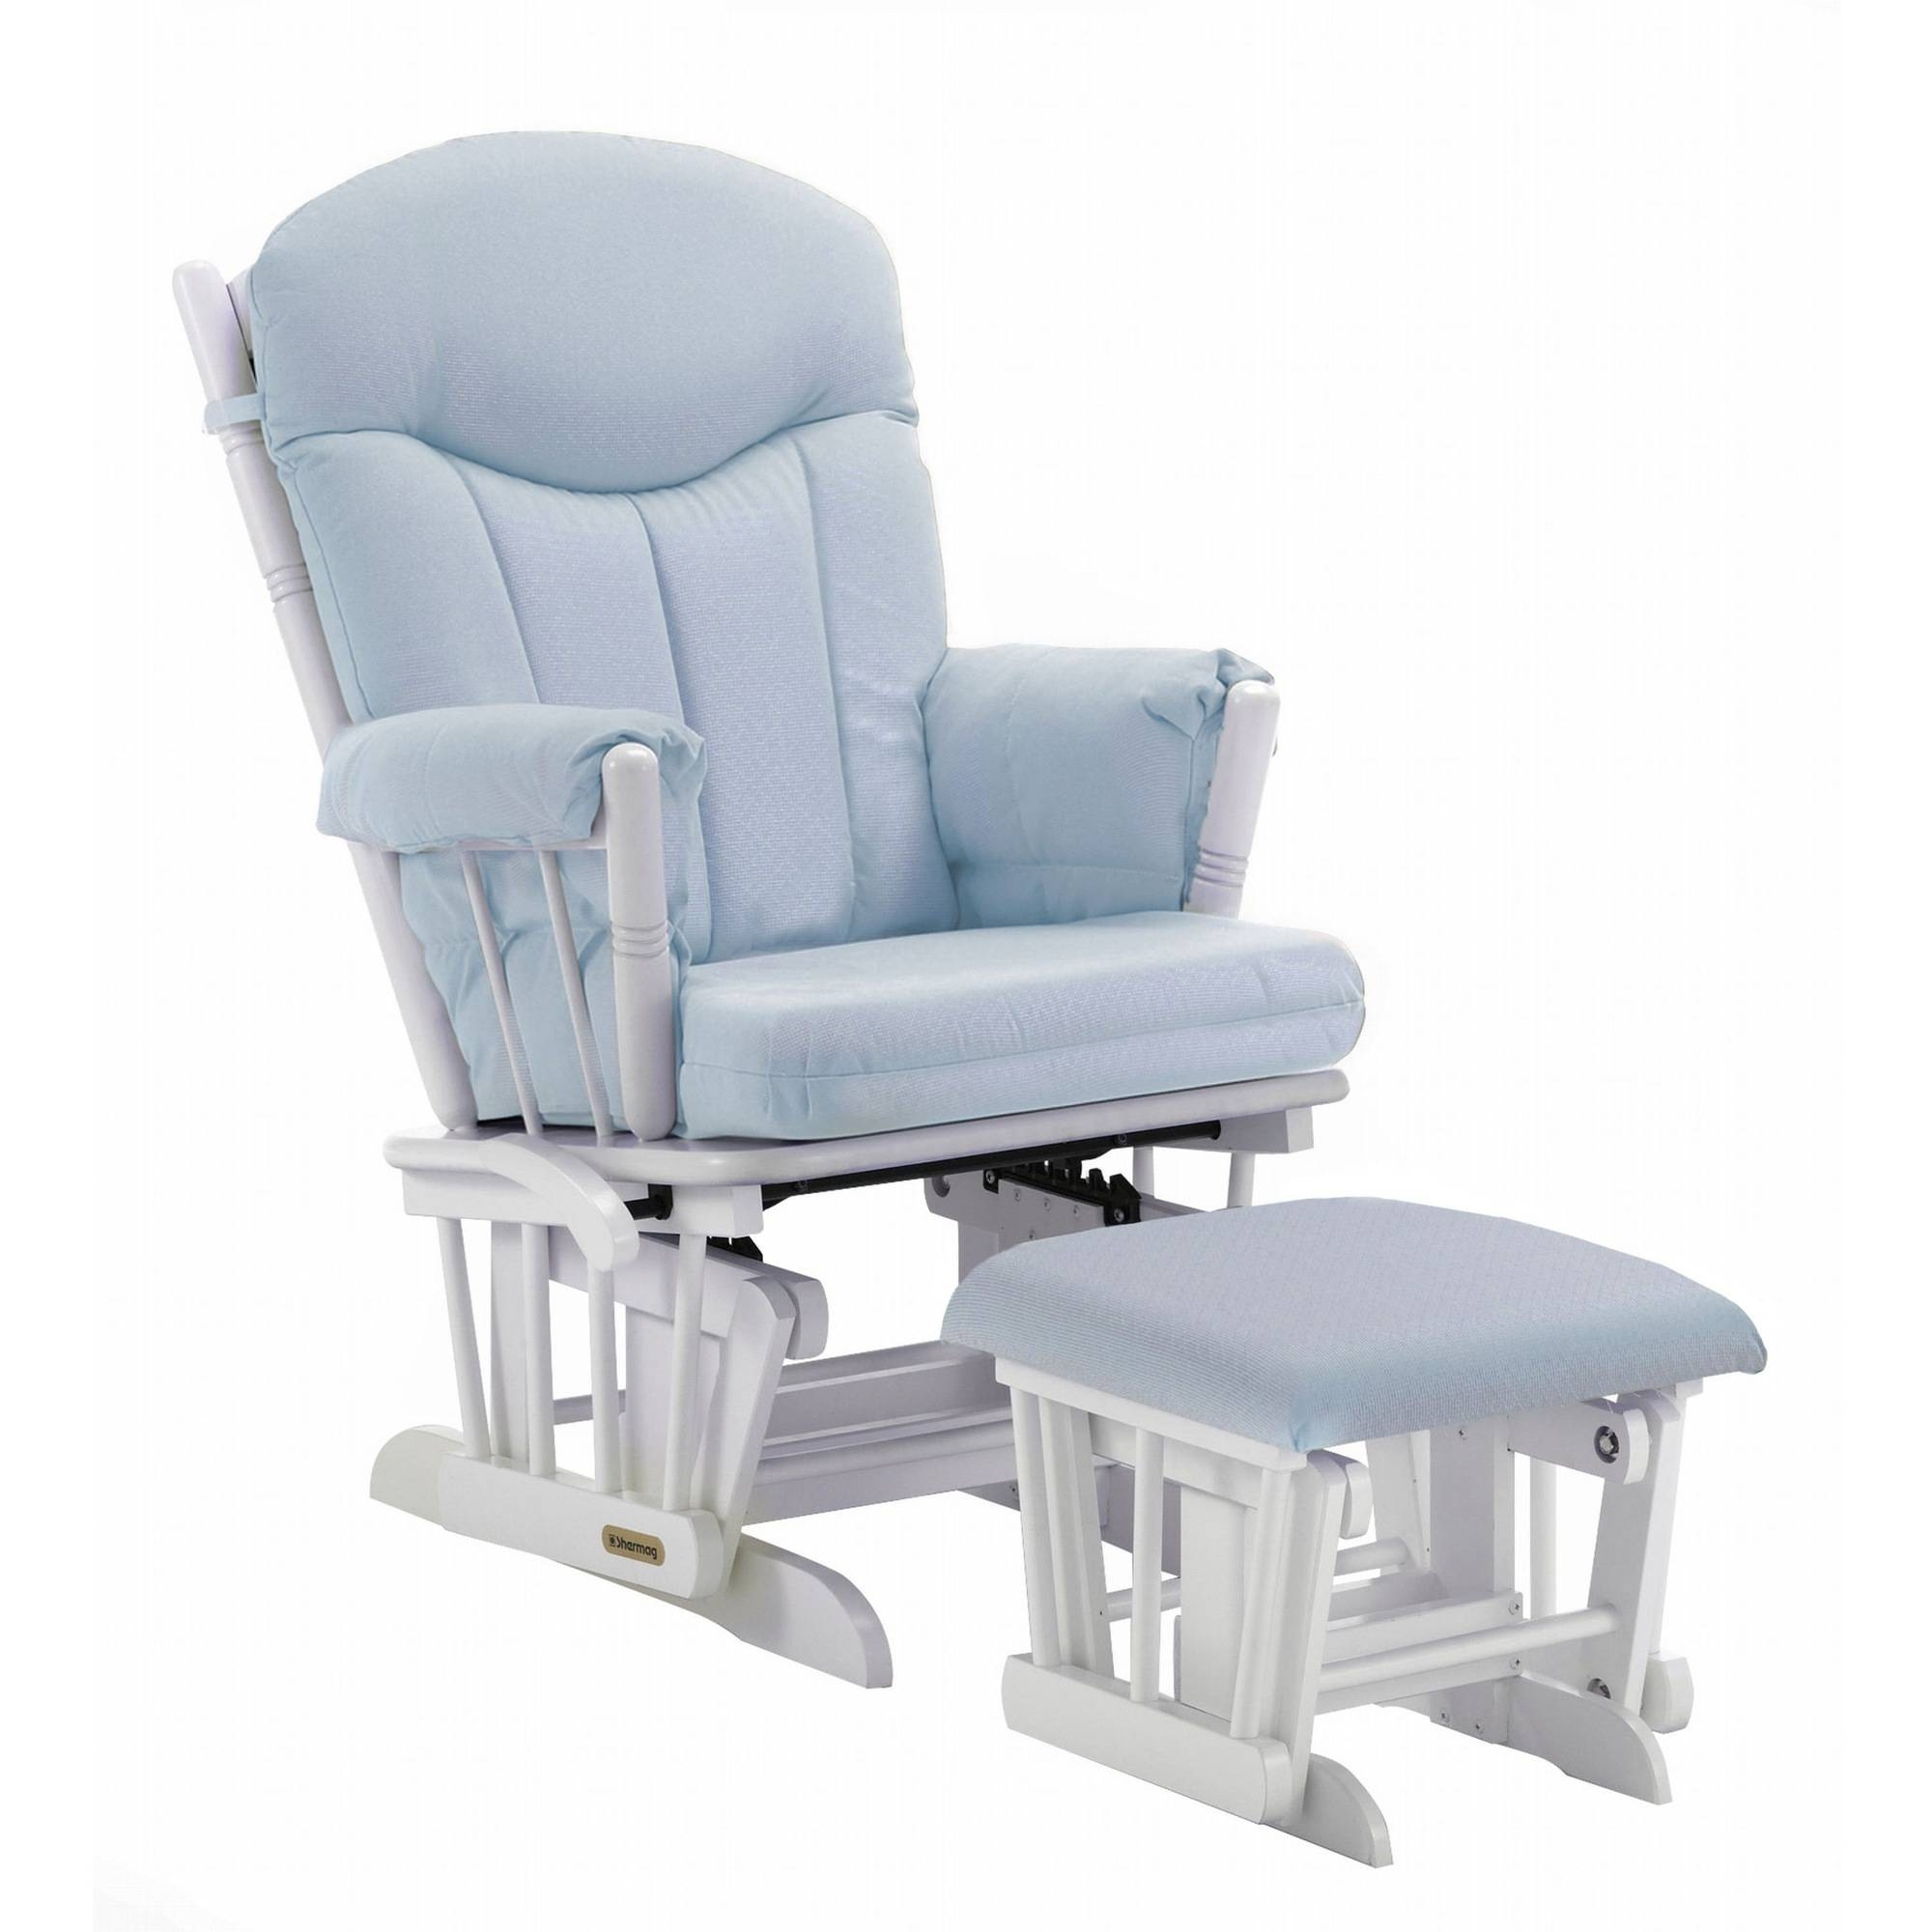 Shermag Combo Glider/ottoman, White/pickwick Light Blue – Walmart In Gliders With Ottoman (View 8 of 10)